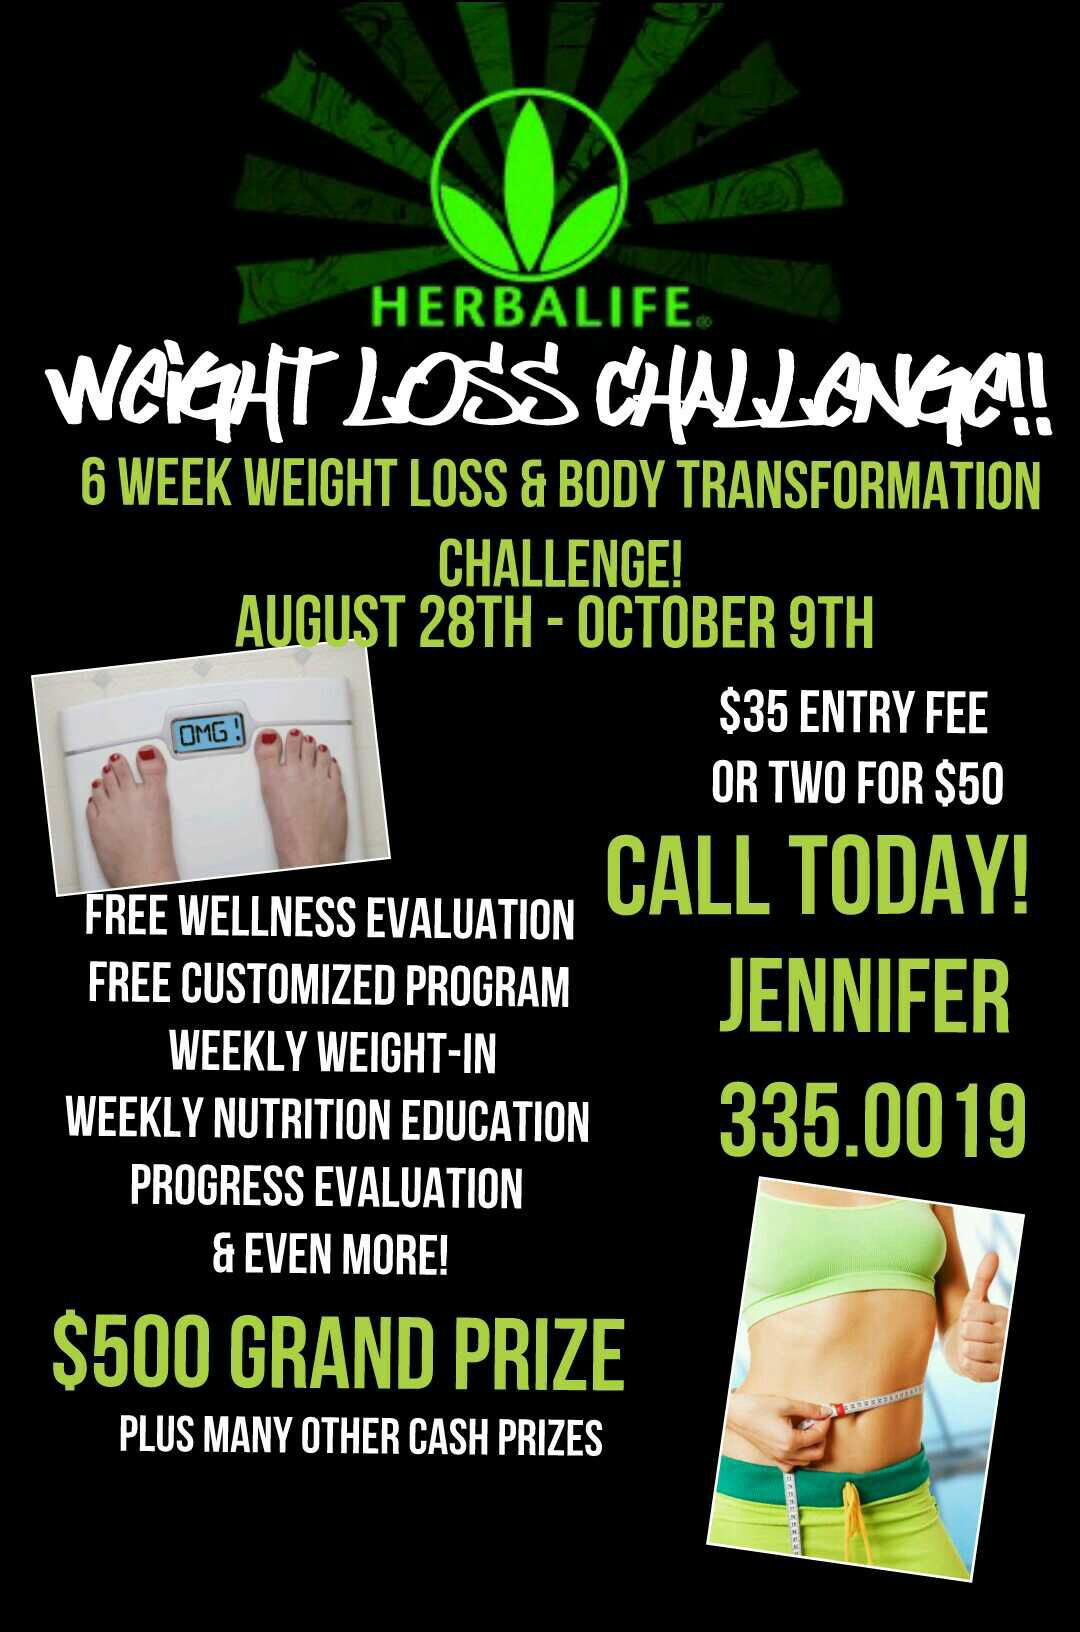 Weight loss study participants needed